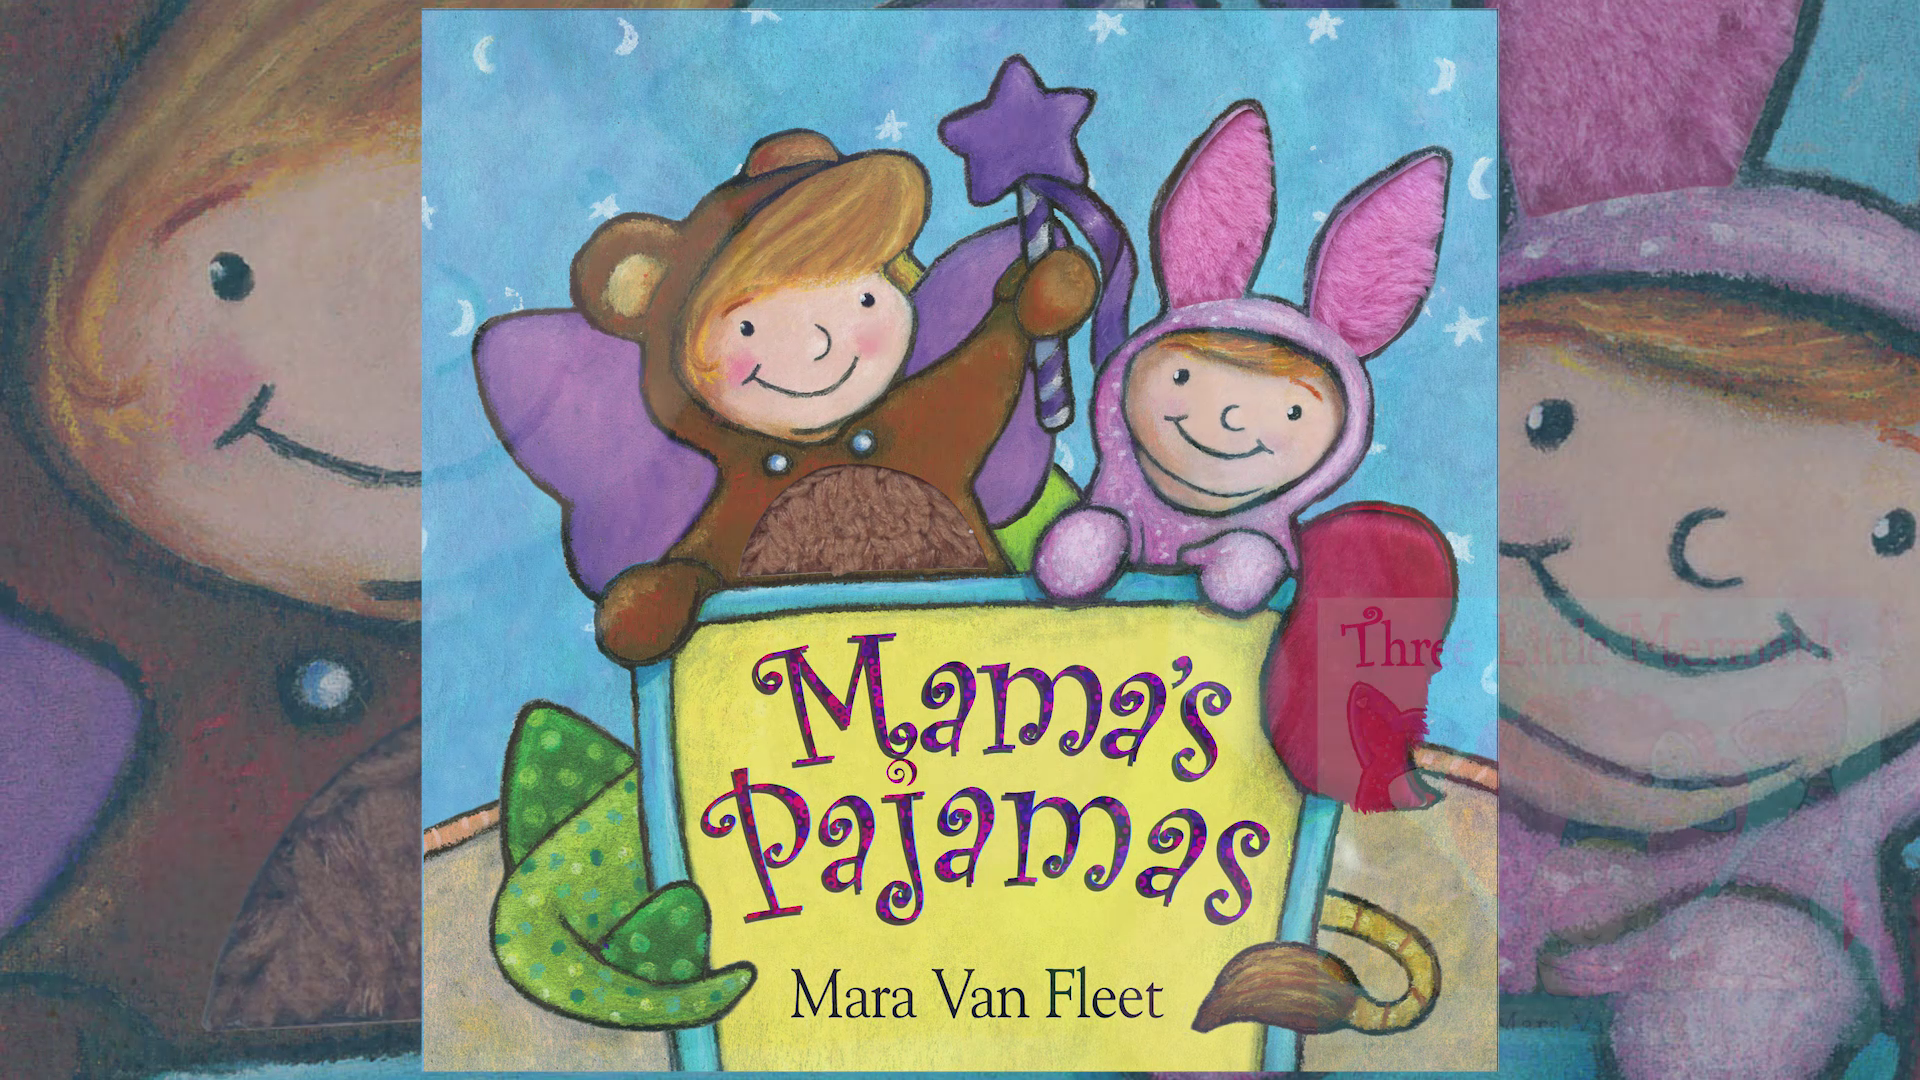 Storytime with Mara Van Fleet's MAMA'S PAJAMAS